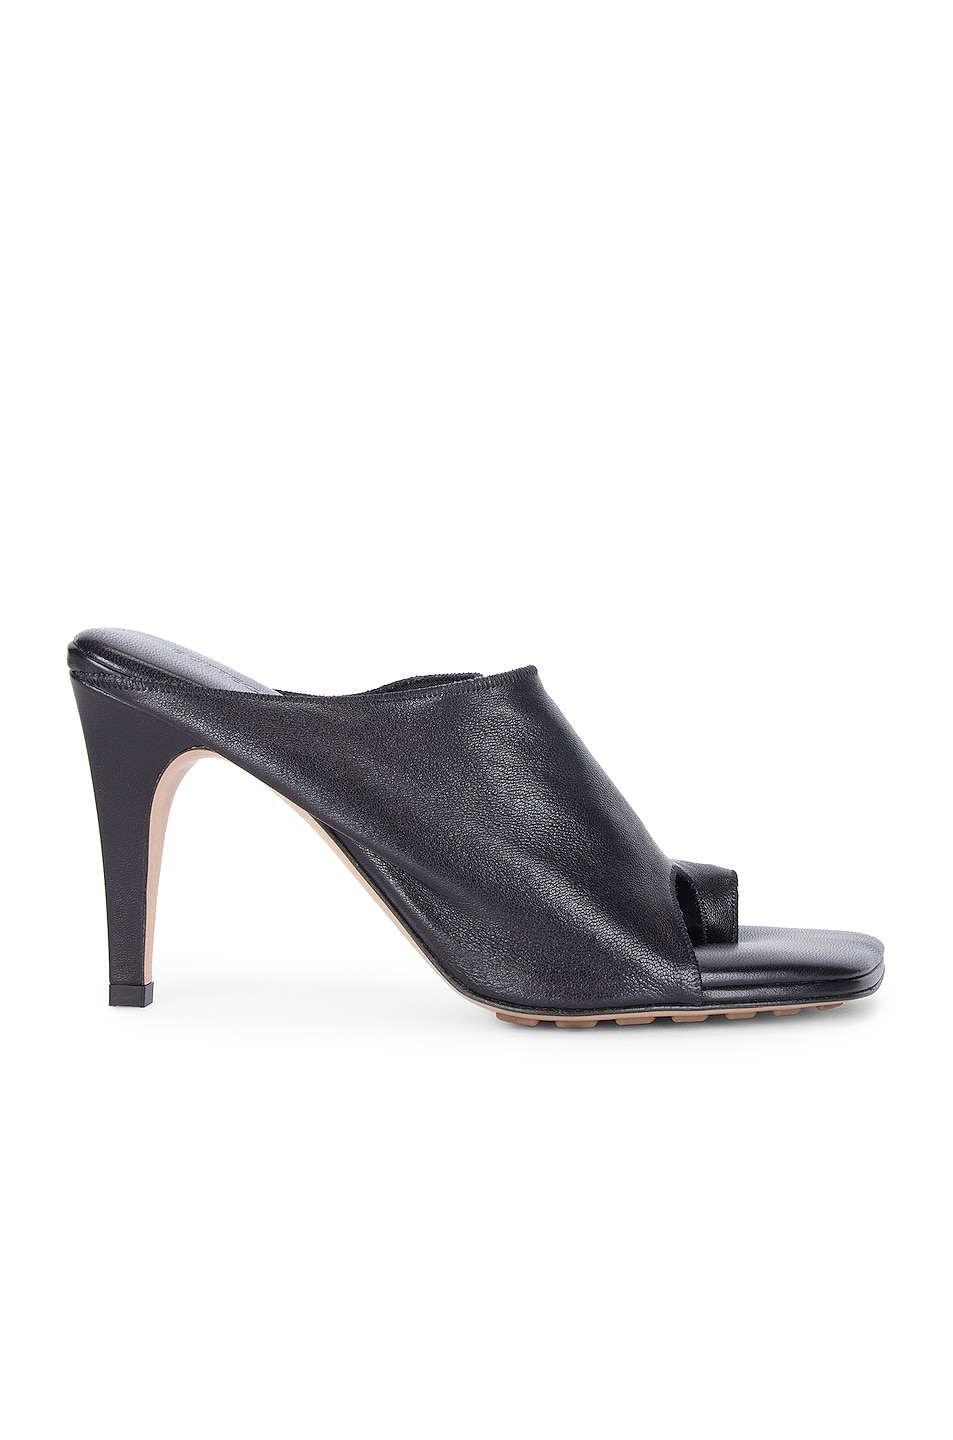 Image 1 of Bottega Veneta Open Toe Mules in Black